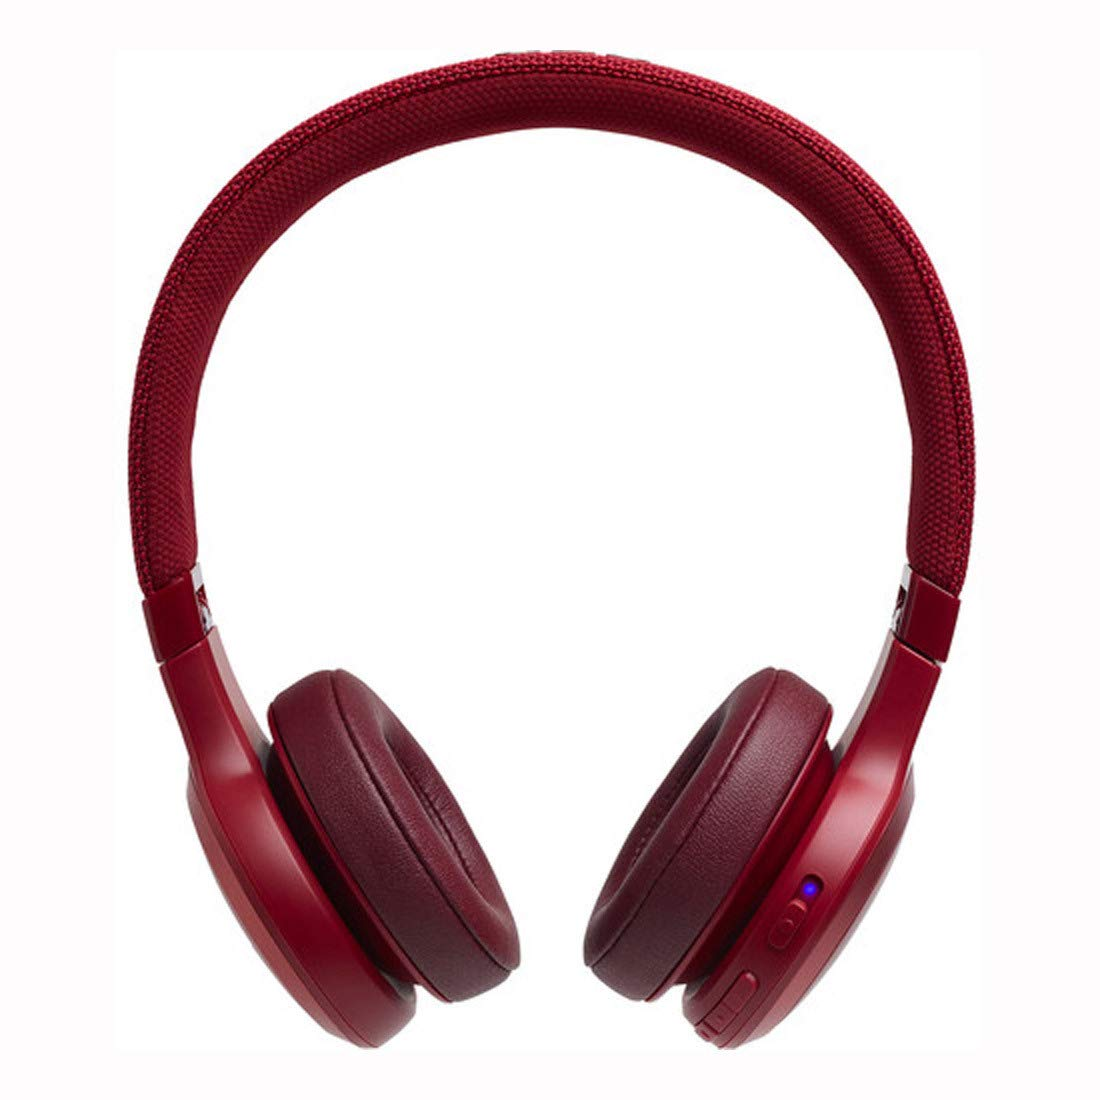 JBL Live 400BT Wireless On-Ear Voice Enabled Headphones with Alexa (Red) (K951845)